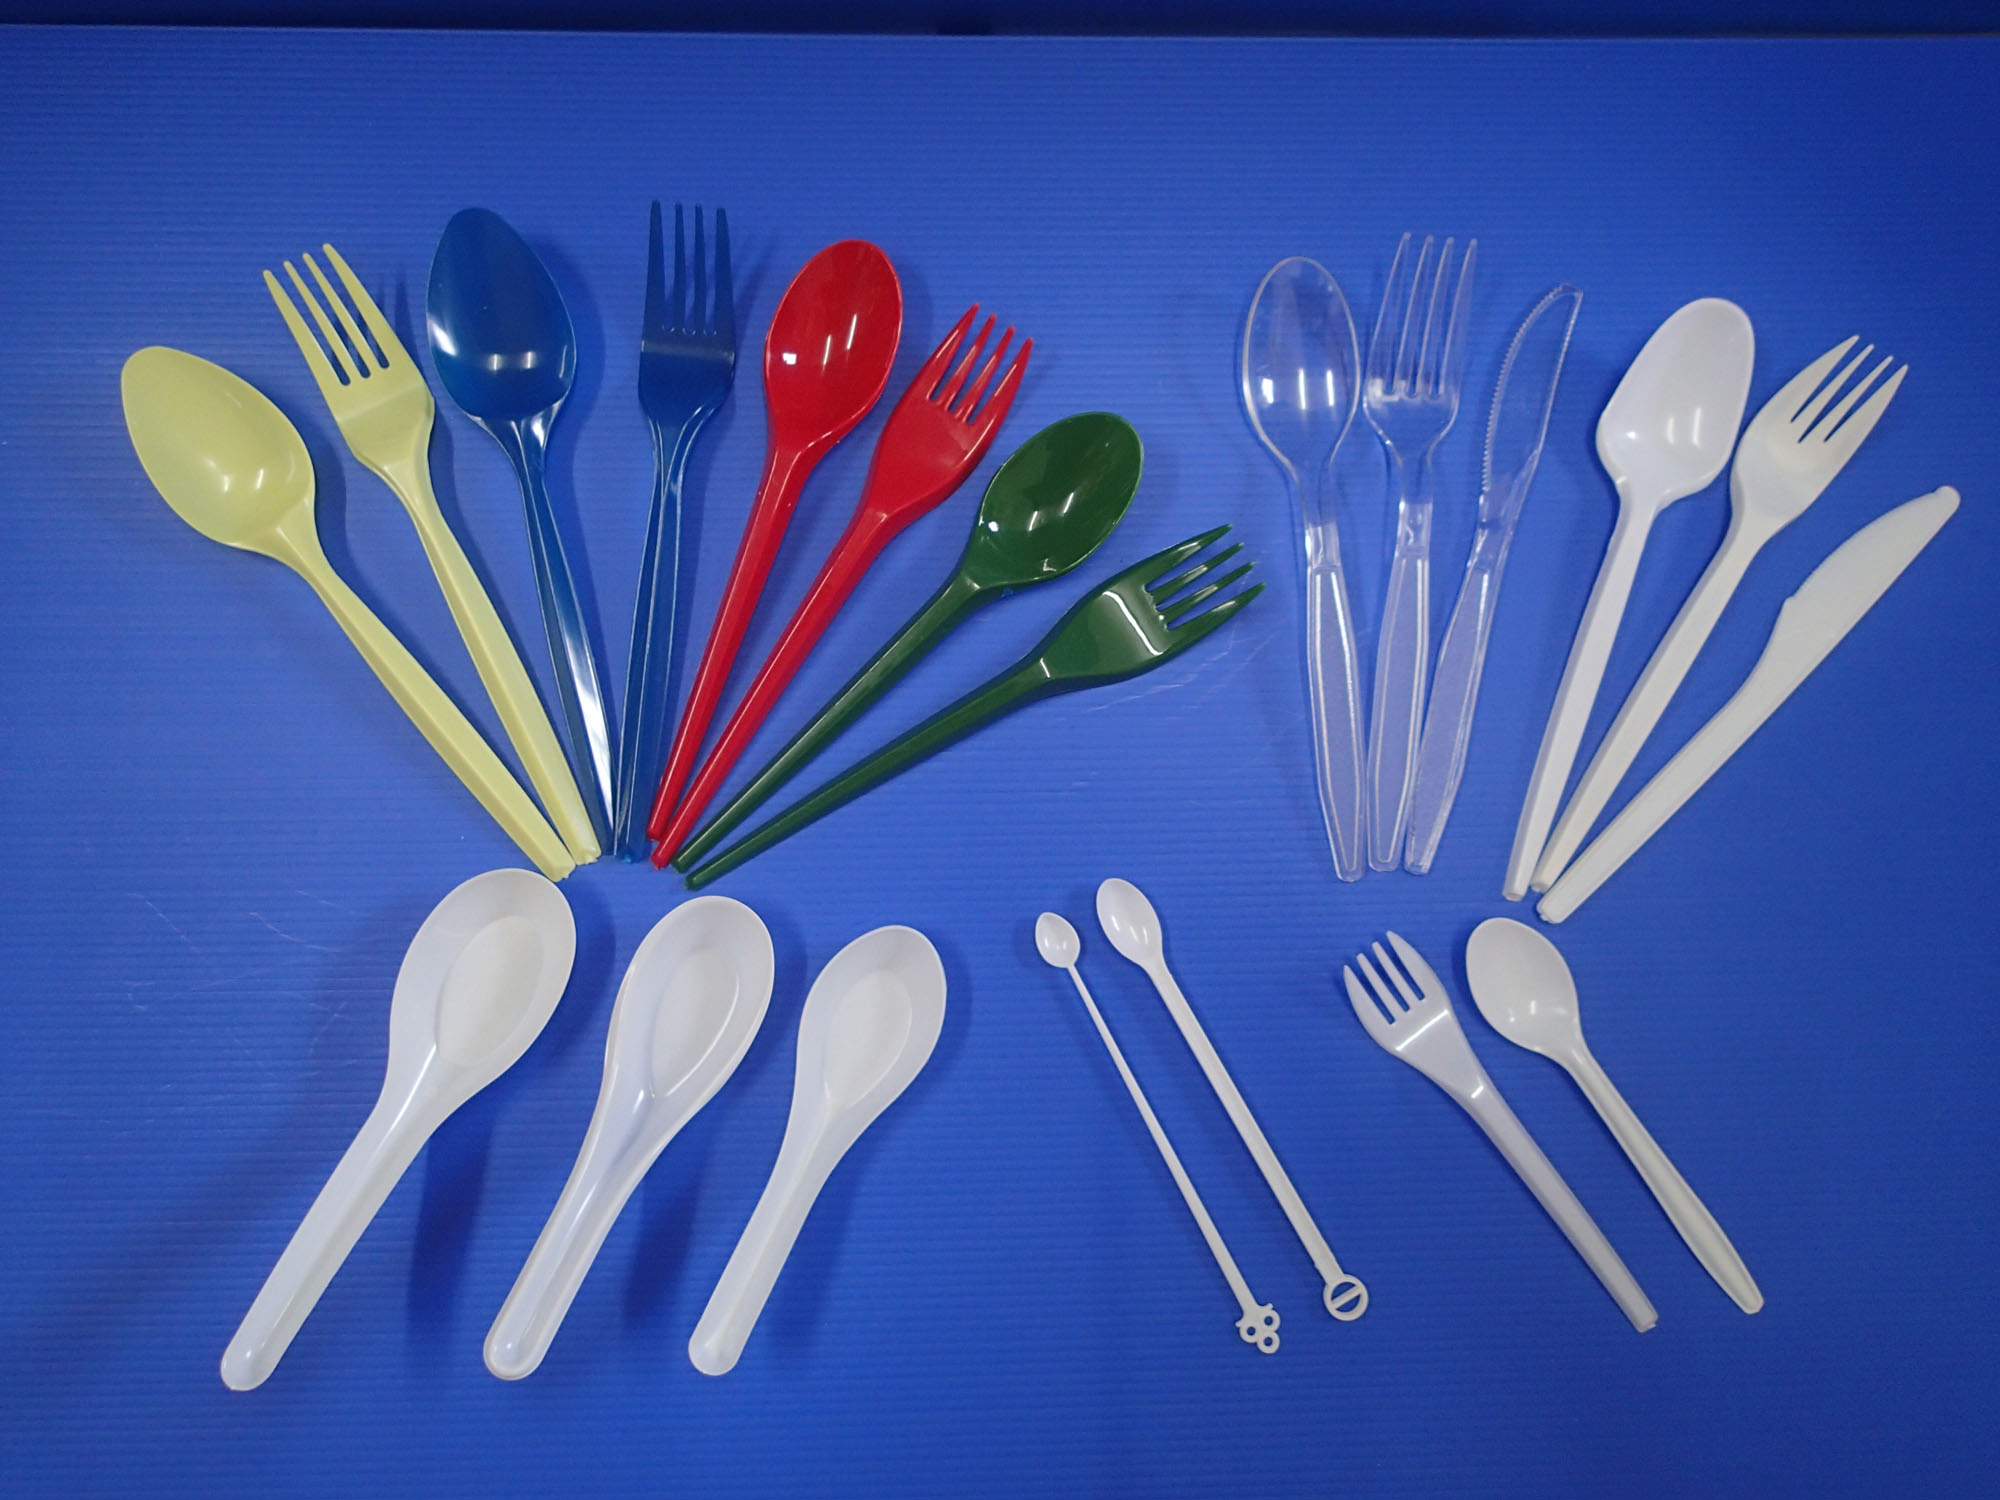 53607e75685ad9d86f0002ca_C4%20Forks%20%26%20Spoons.jpg